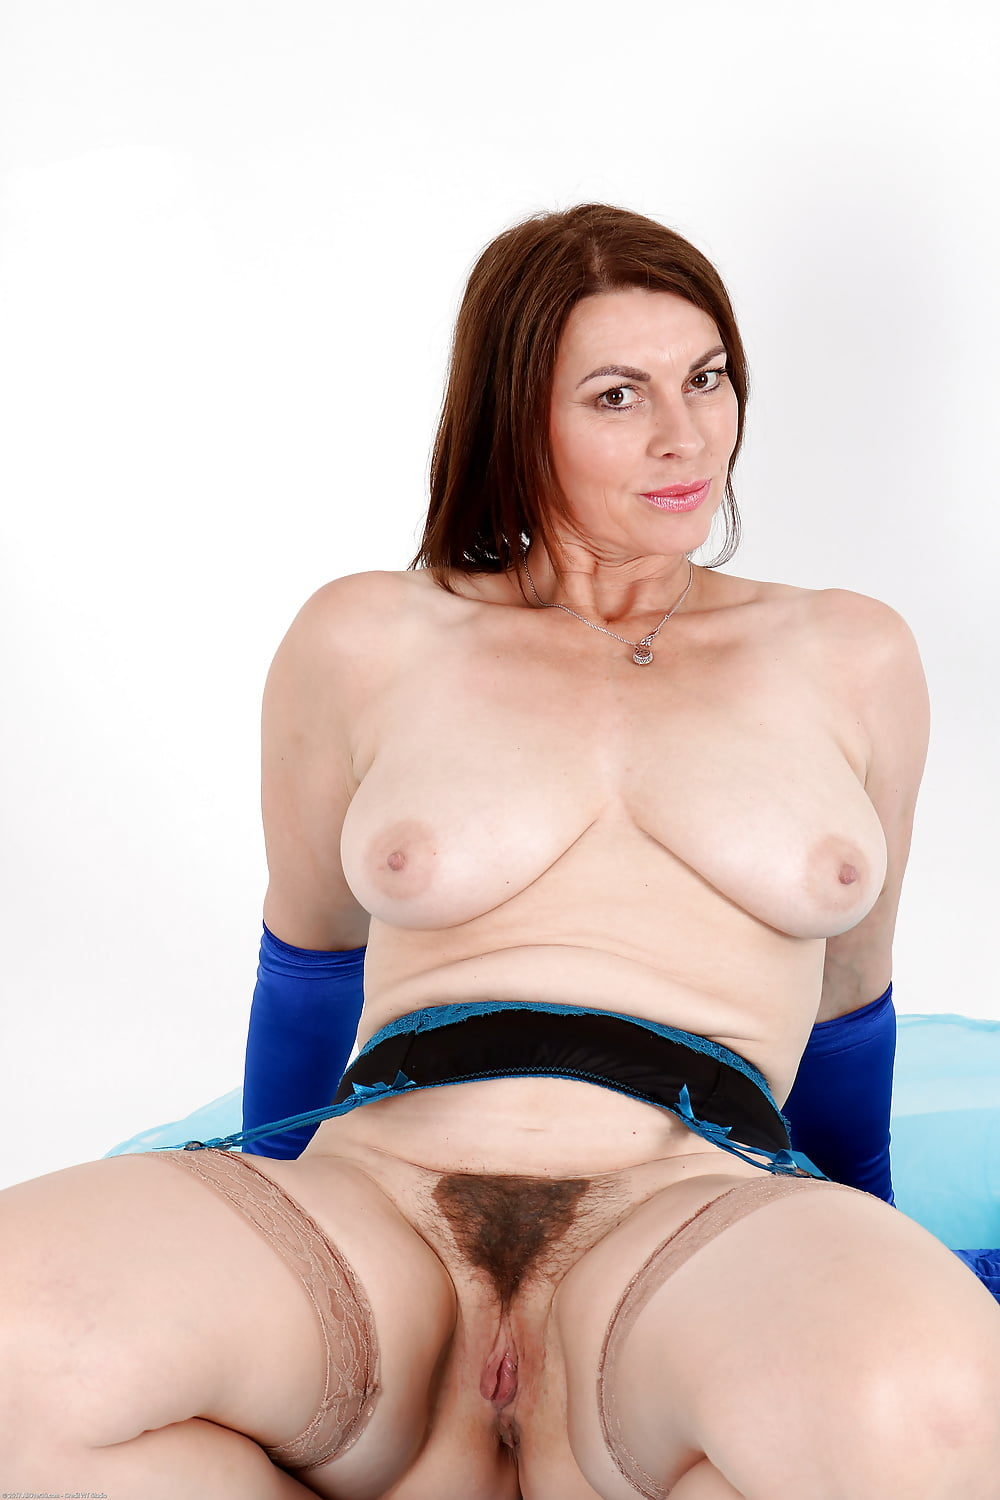 Hot british milf christine playing adult pictures full hd